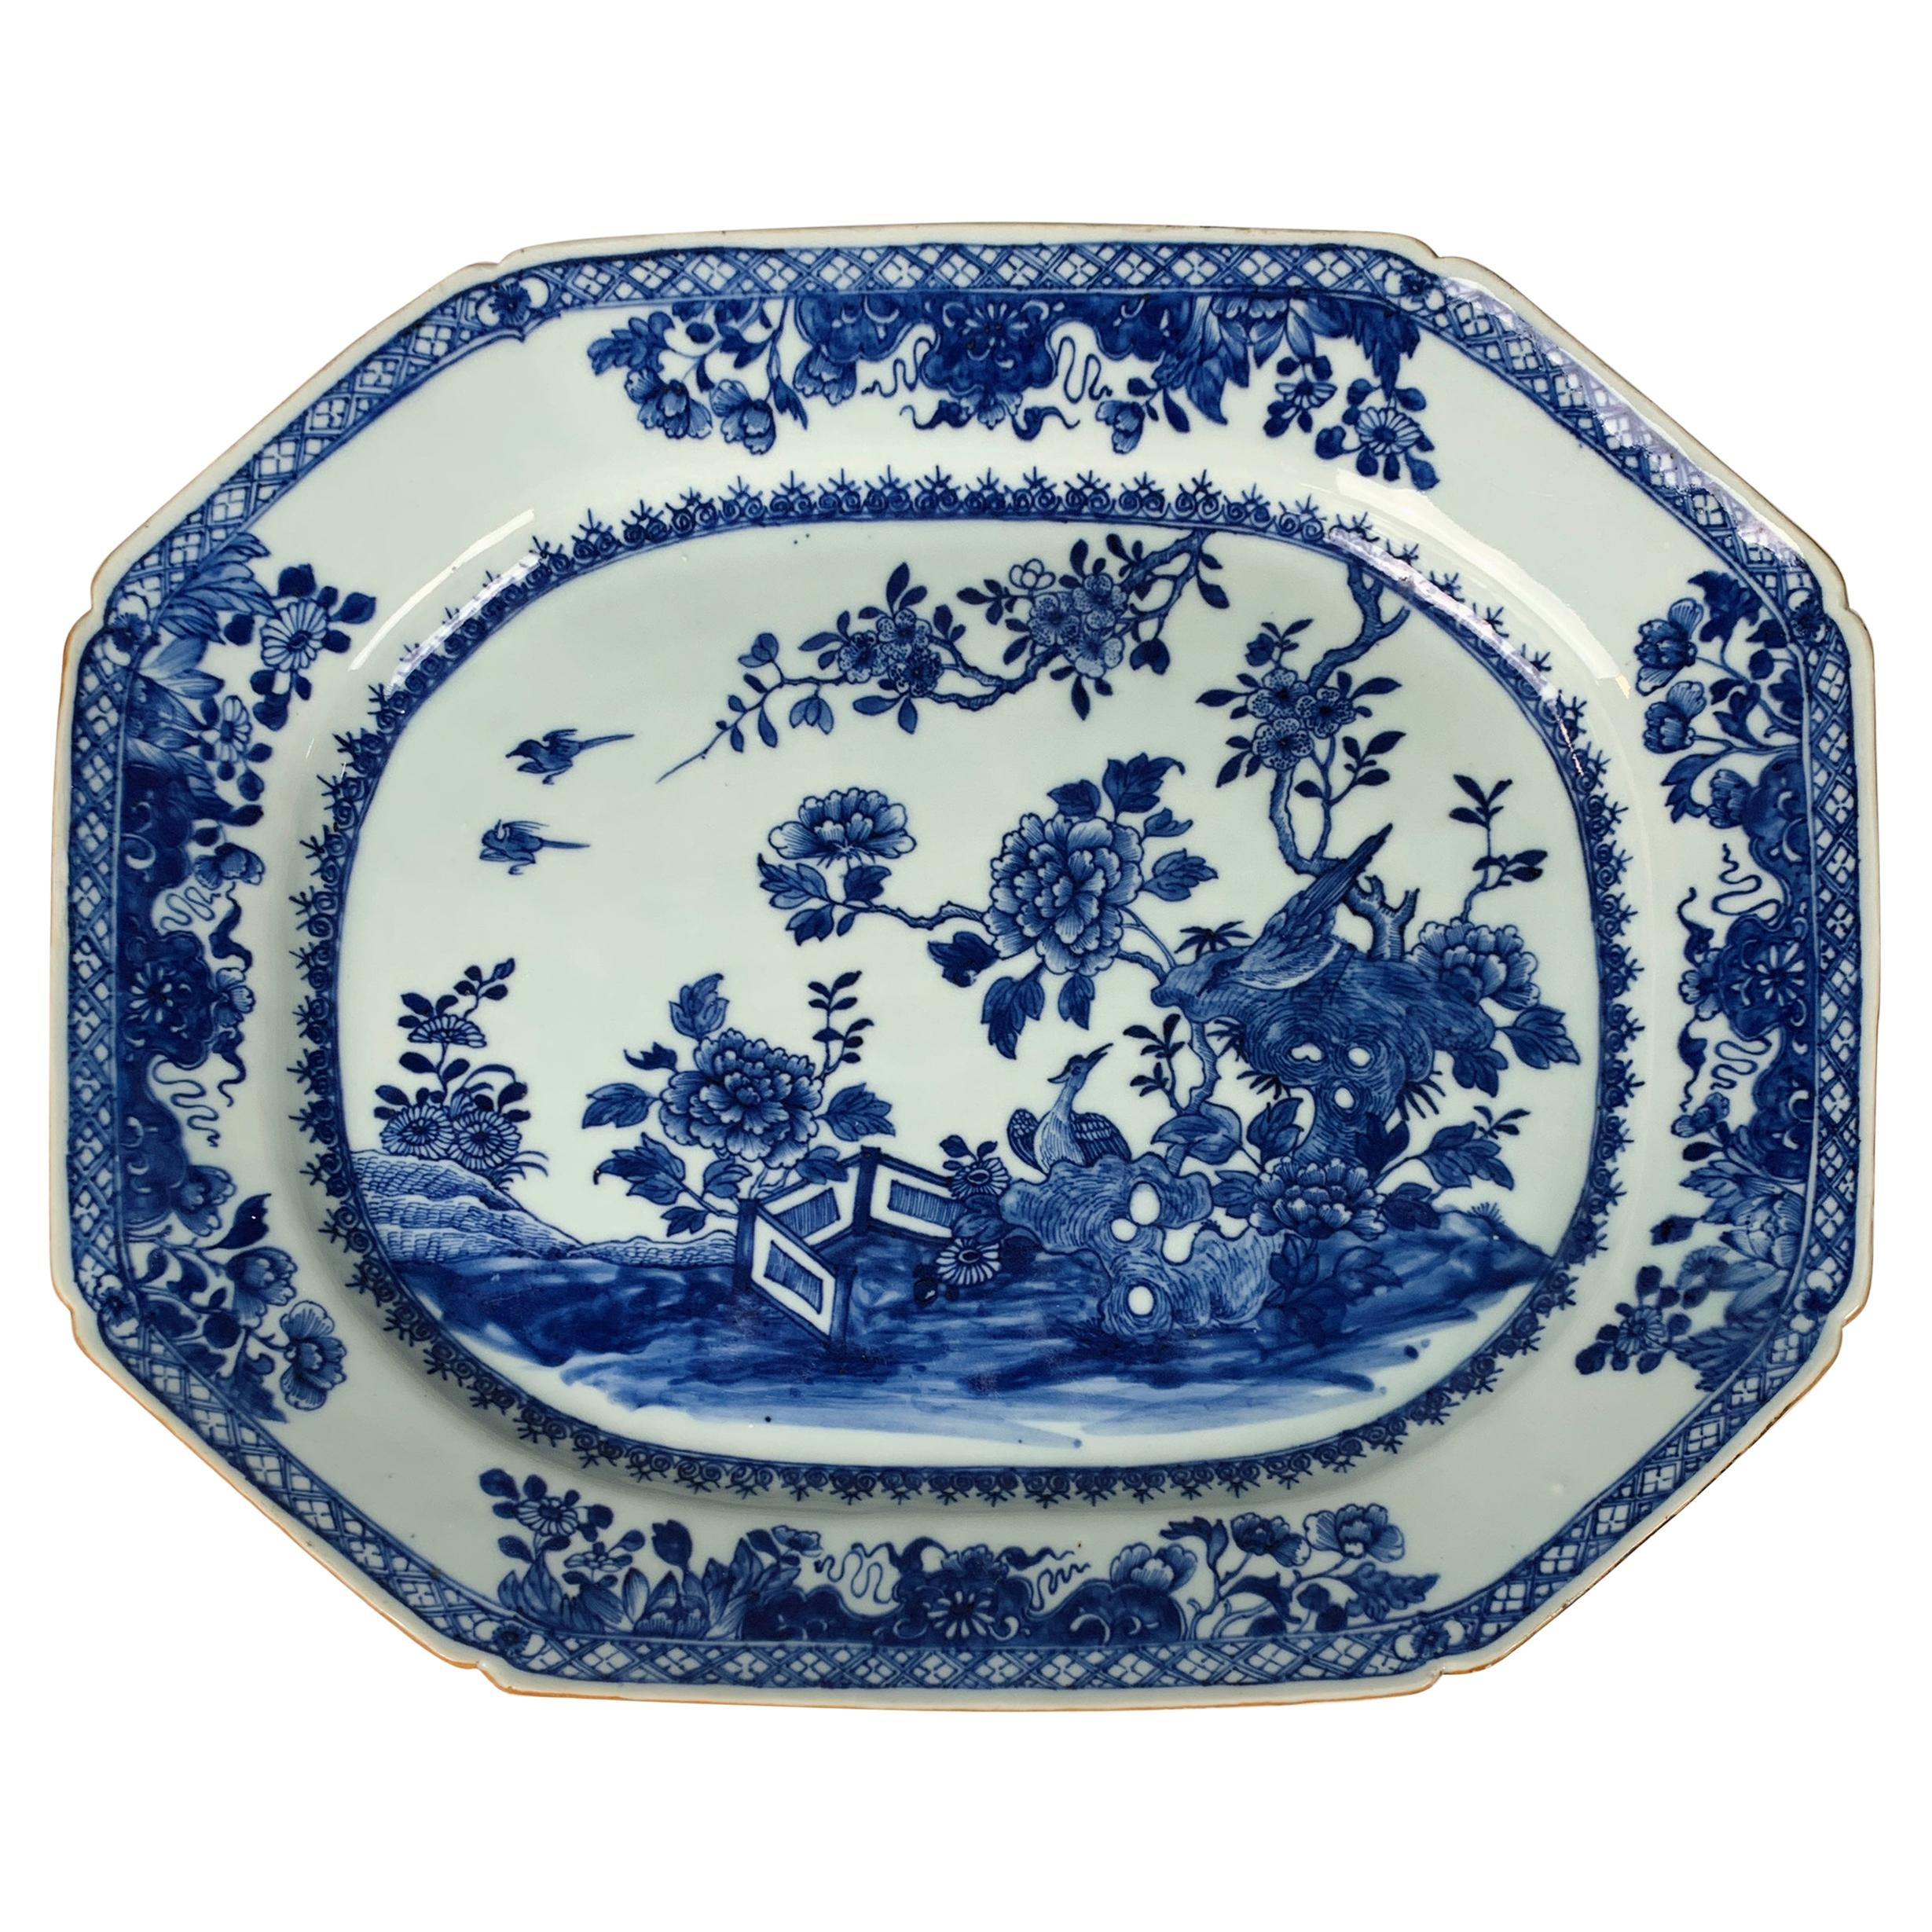 Chinese Porcelain Blue and White Platter Hand-Painted, 18th Century, Circa 1770